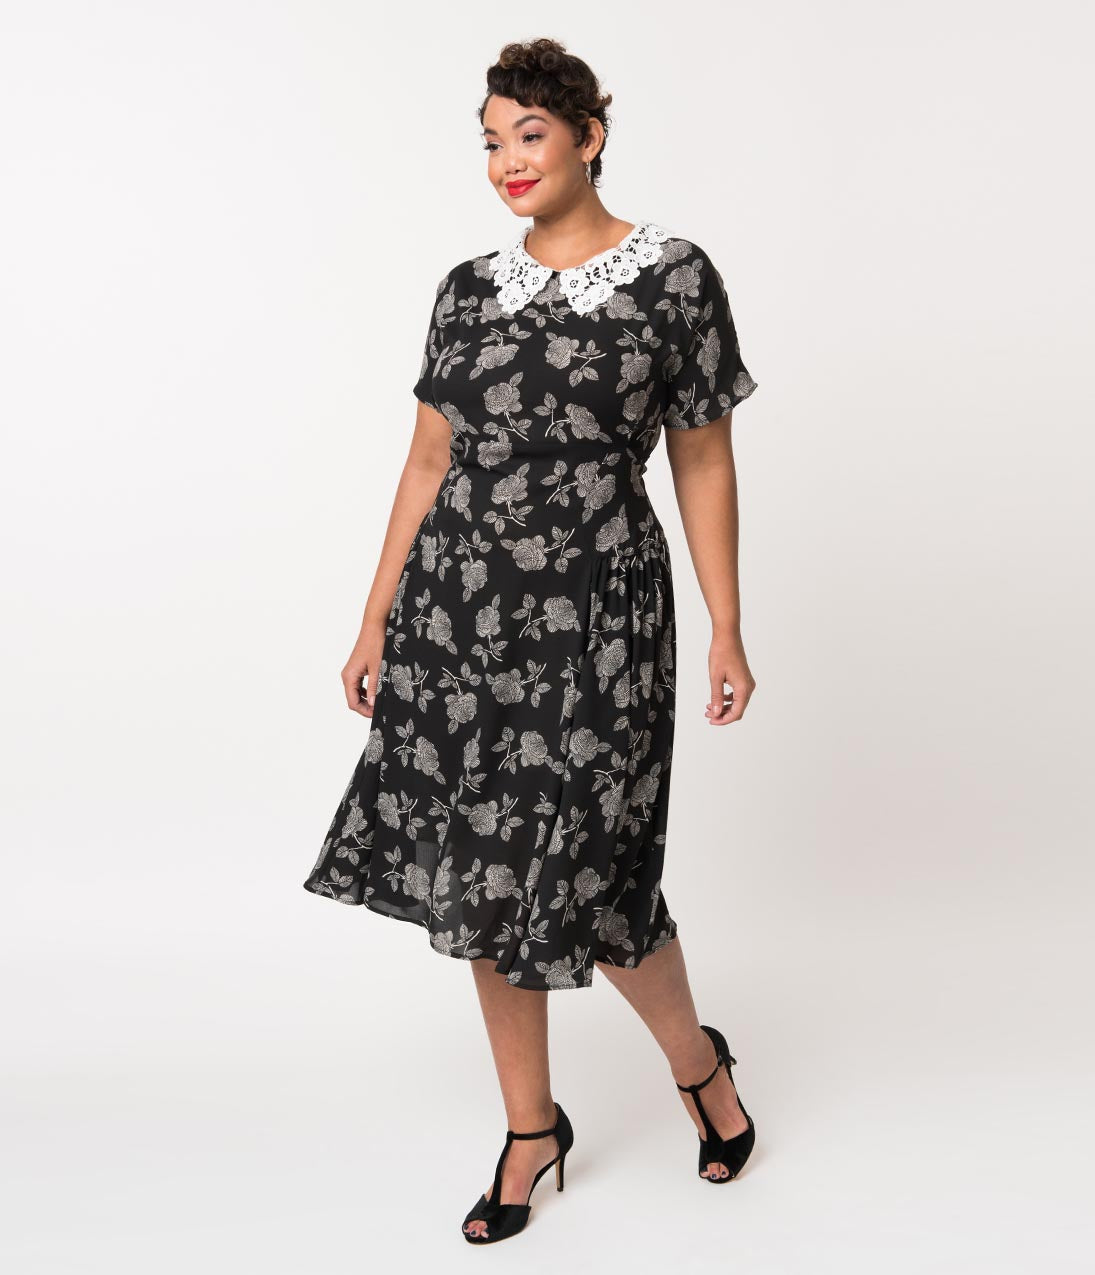 1940s Plus Size Fashion: Style Advice from 1940s to Today Unique Vintage Plus Size 1940S Black  White Floral Lace Collar Margie Dress $88.00 AT vintagedancer.com